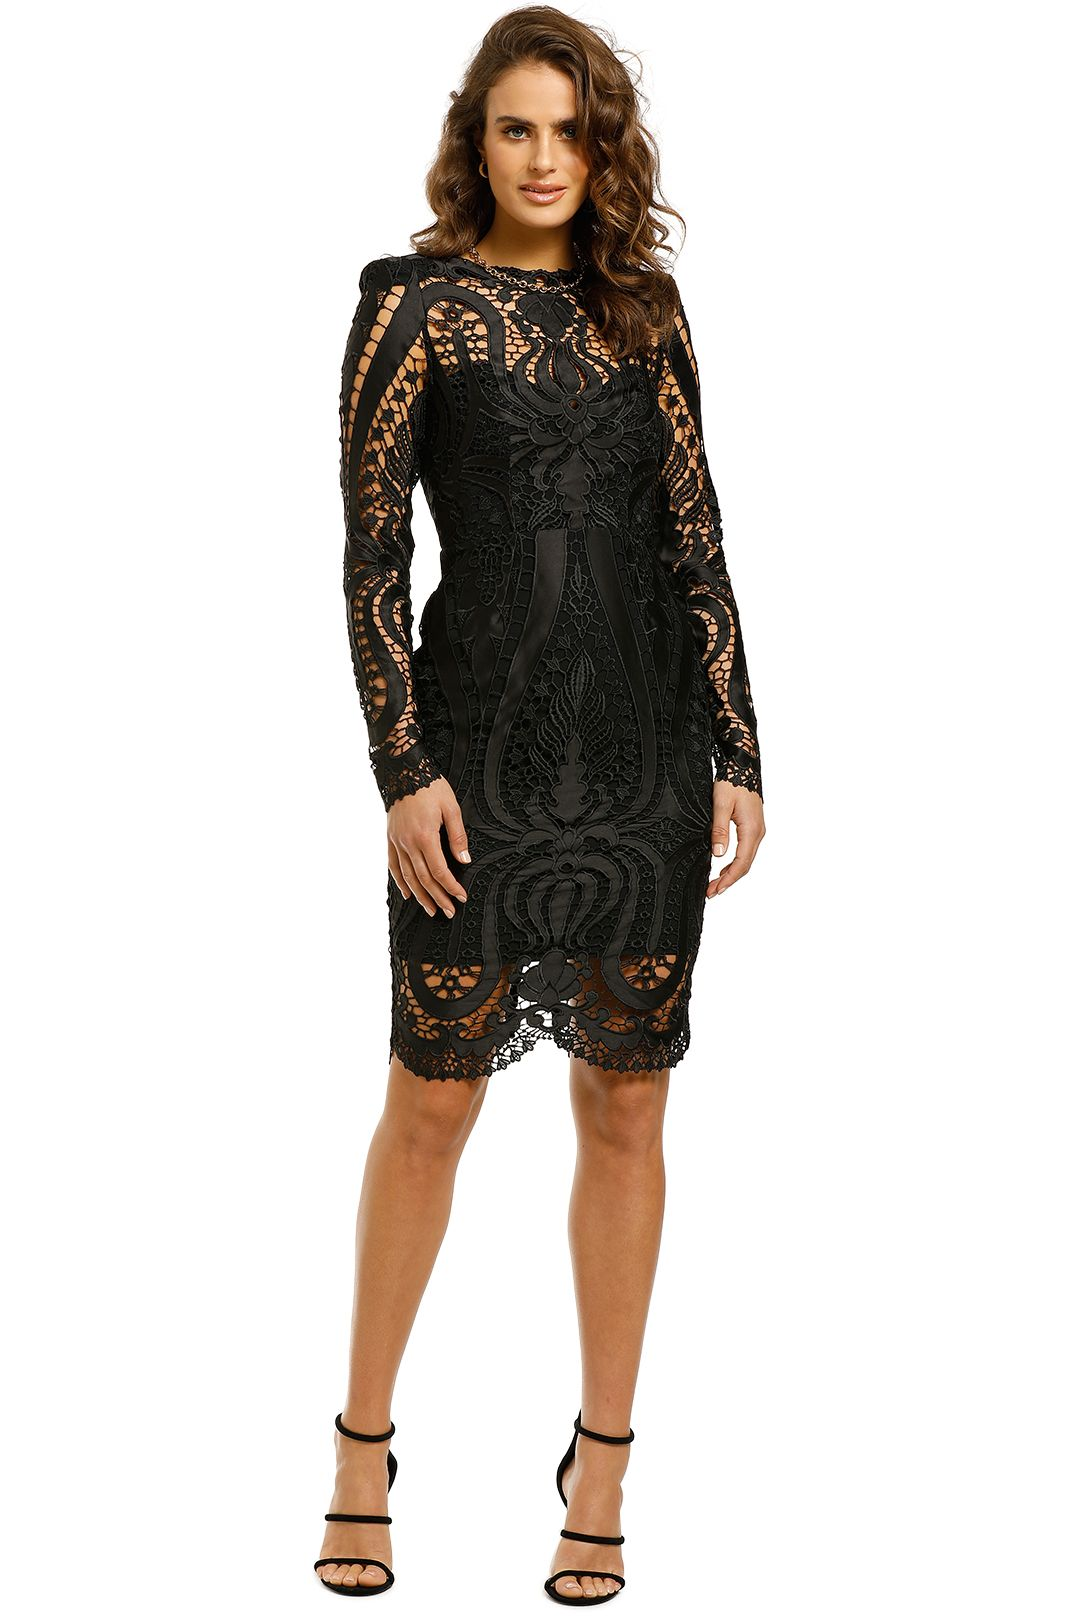 Thurley-Serpentine-Dress-Front